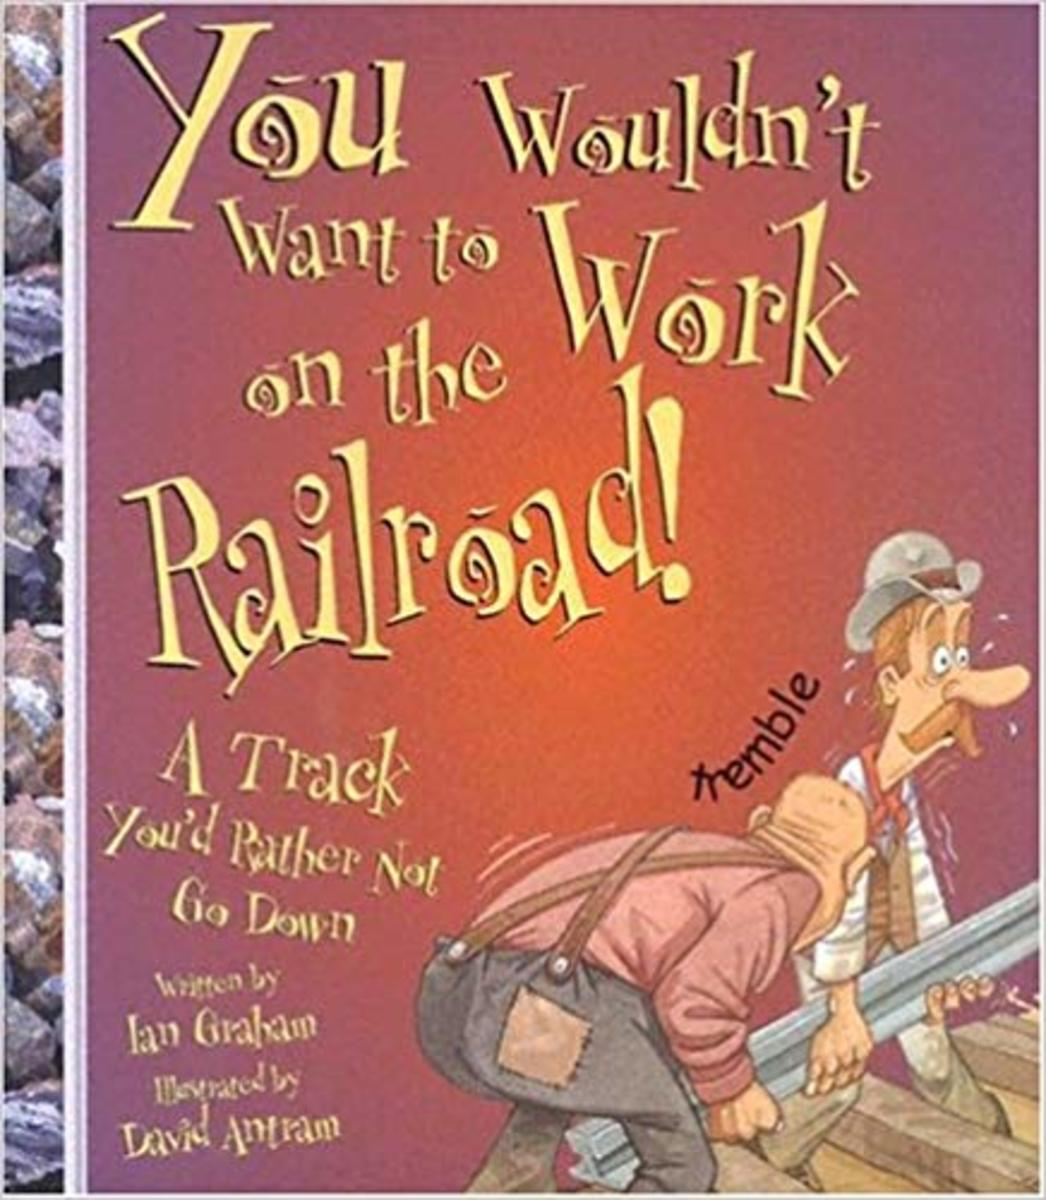 You Wouldn't Want to Work on the Railroad!: A Track You'd Rather Not Go Down (You Wouldn't Want To) by Ian Graham